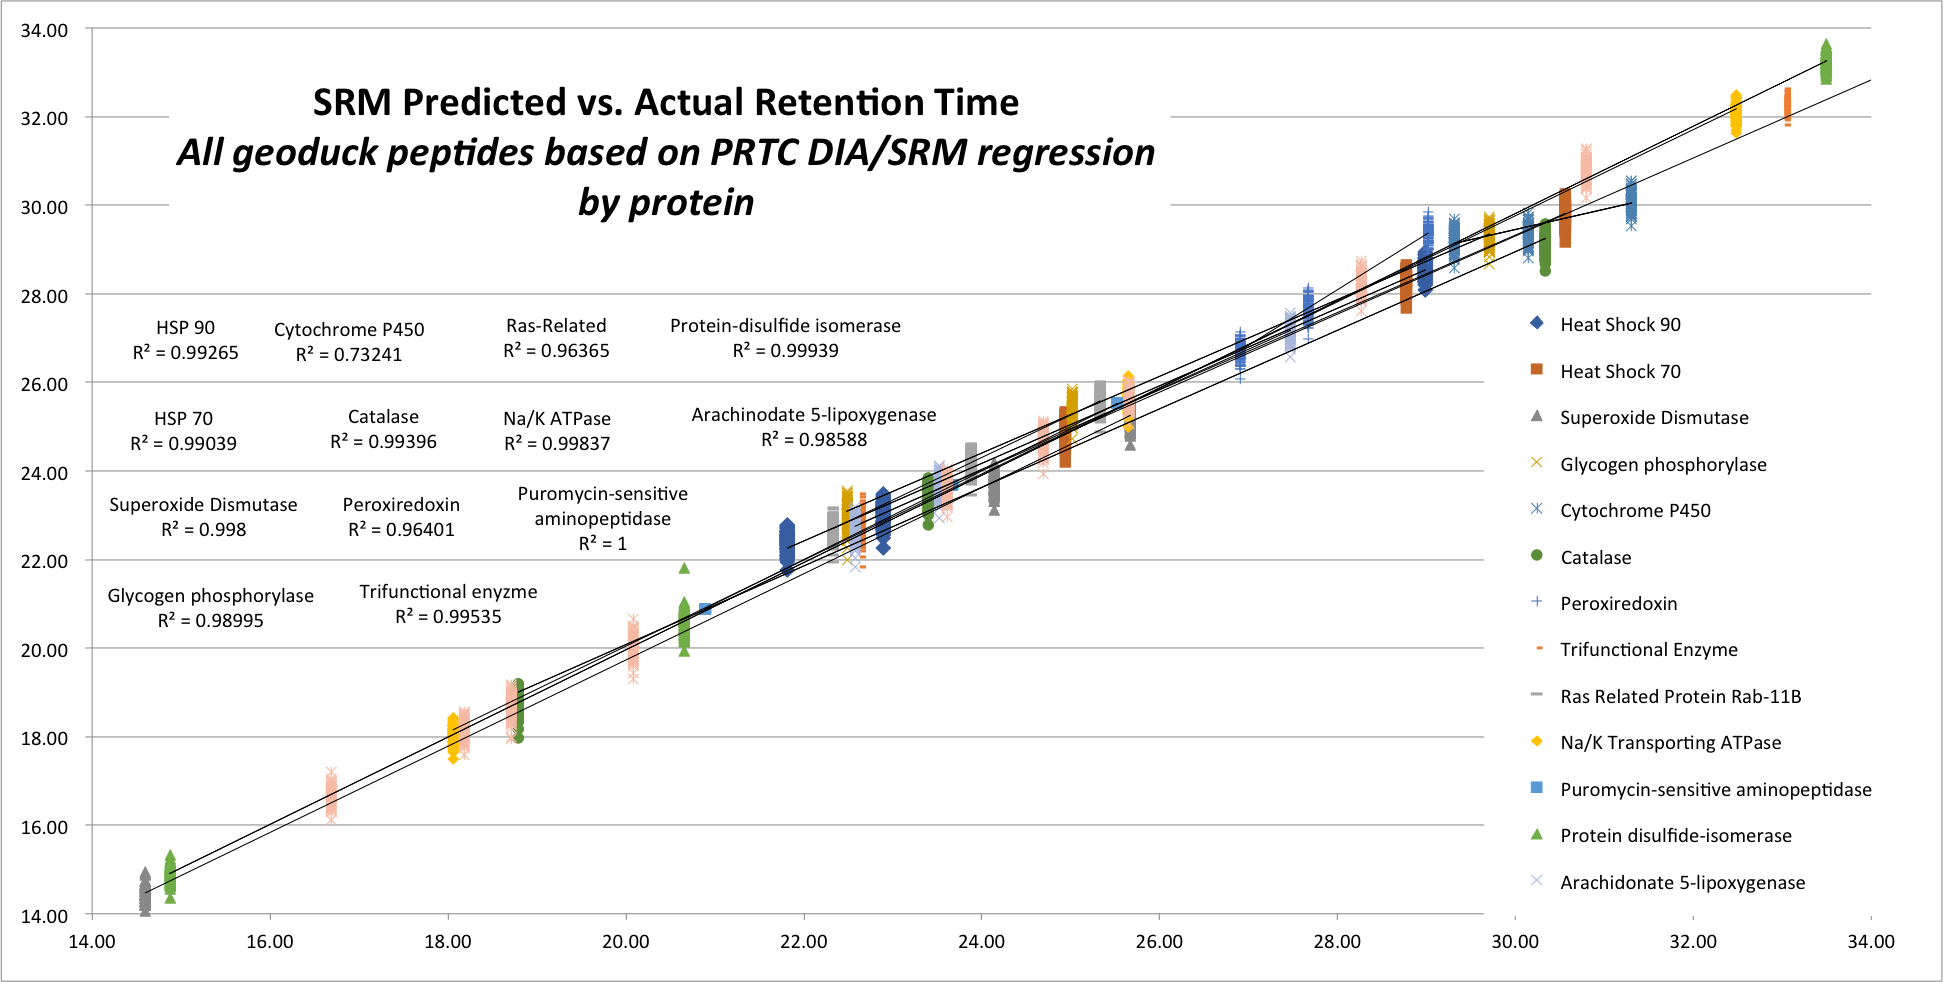 Predicted RT vs. Actual by protein